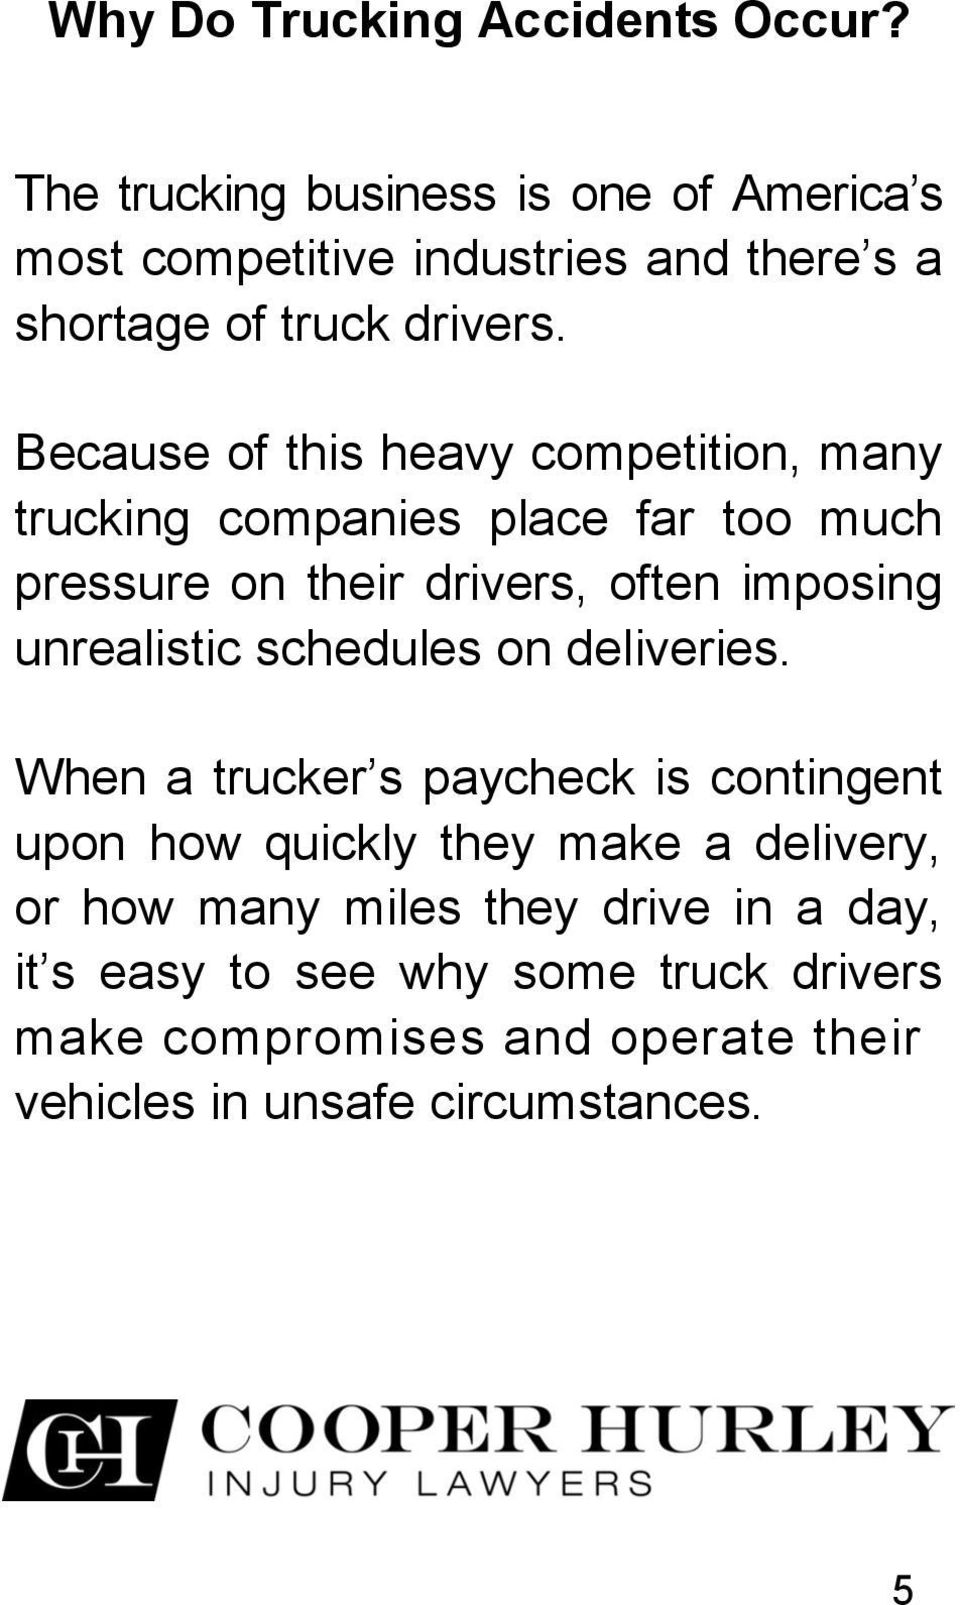 Because of this heavy competition, many trucking companies place far too much pressure on their drivers, often imposing unrealistic